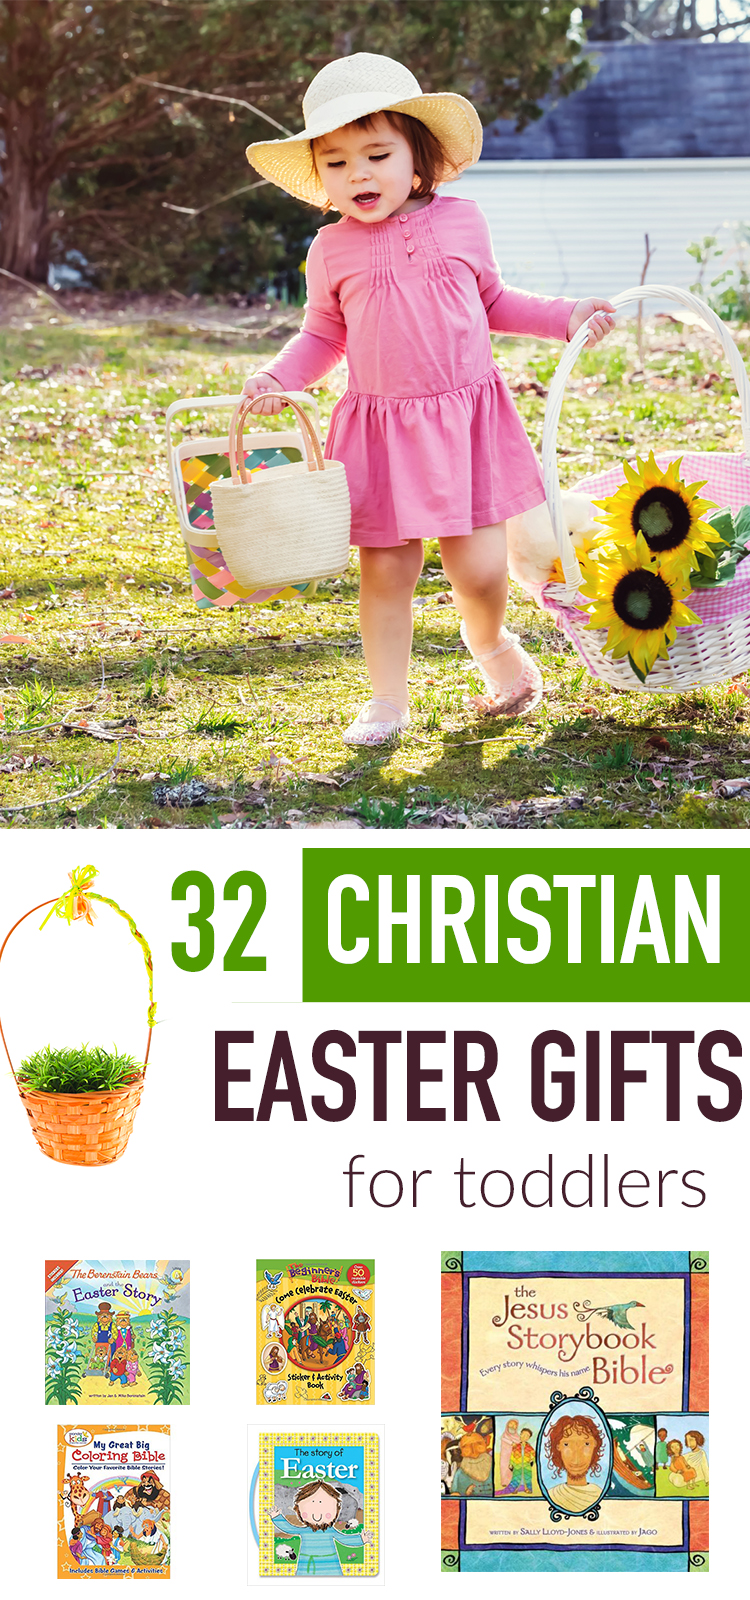 32 cute christian easter gifts for toddlers christ centered holidays easter baskets toddlers easter ideas toddlers easter gifts for toddlers easter gifts toddlers negle